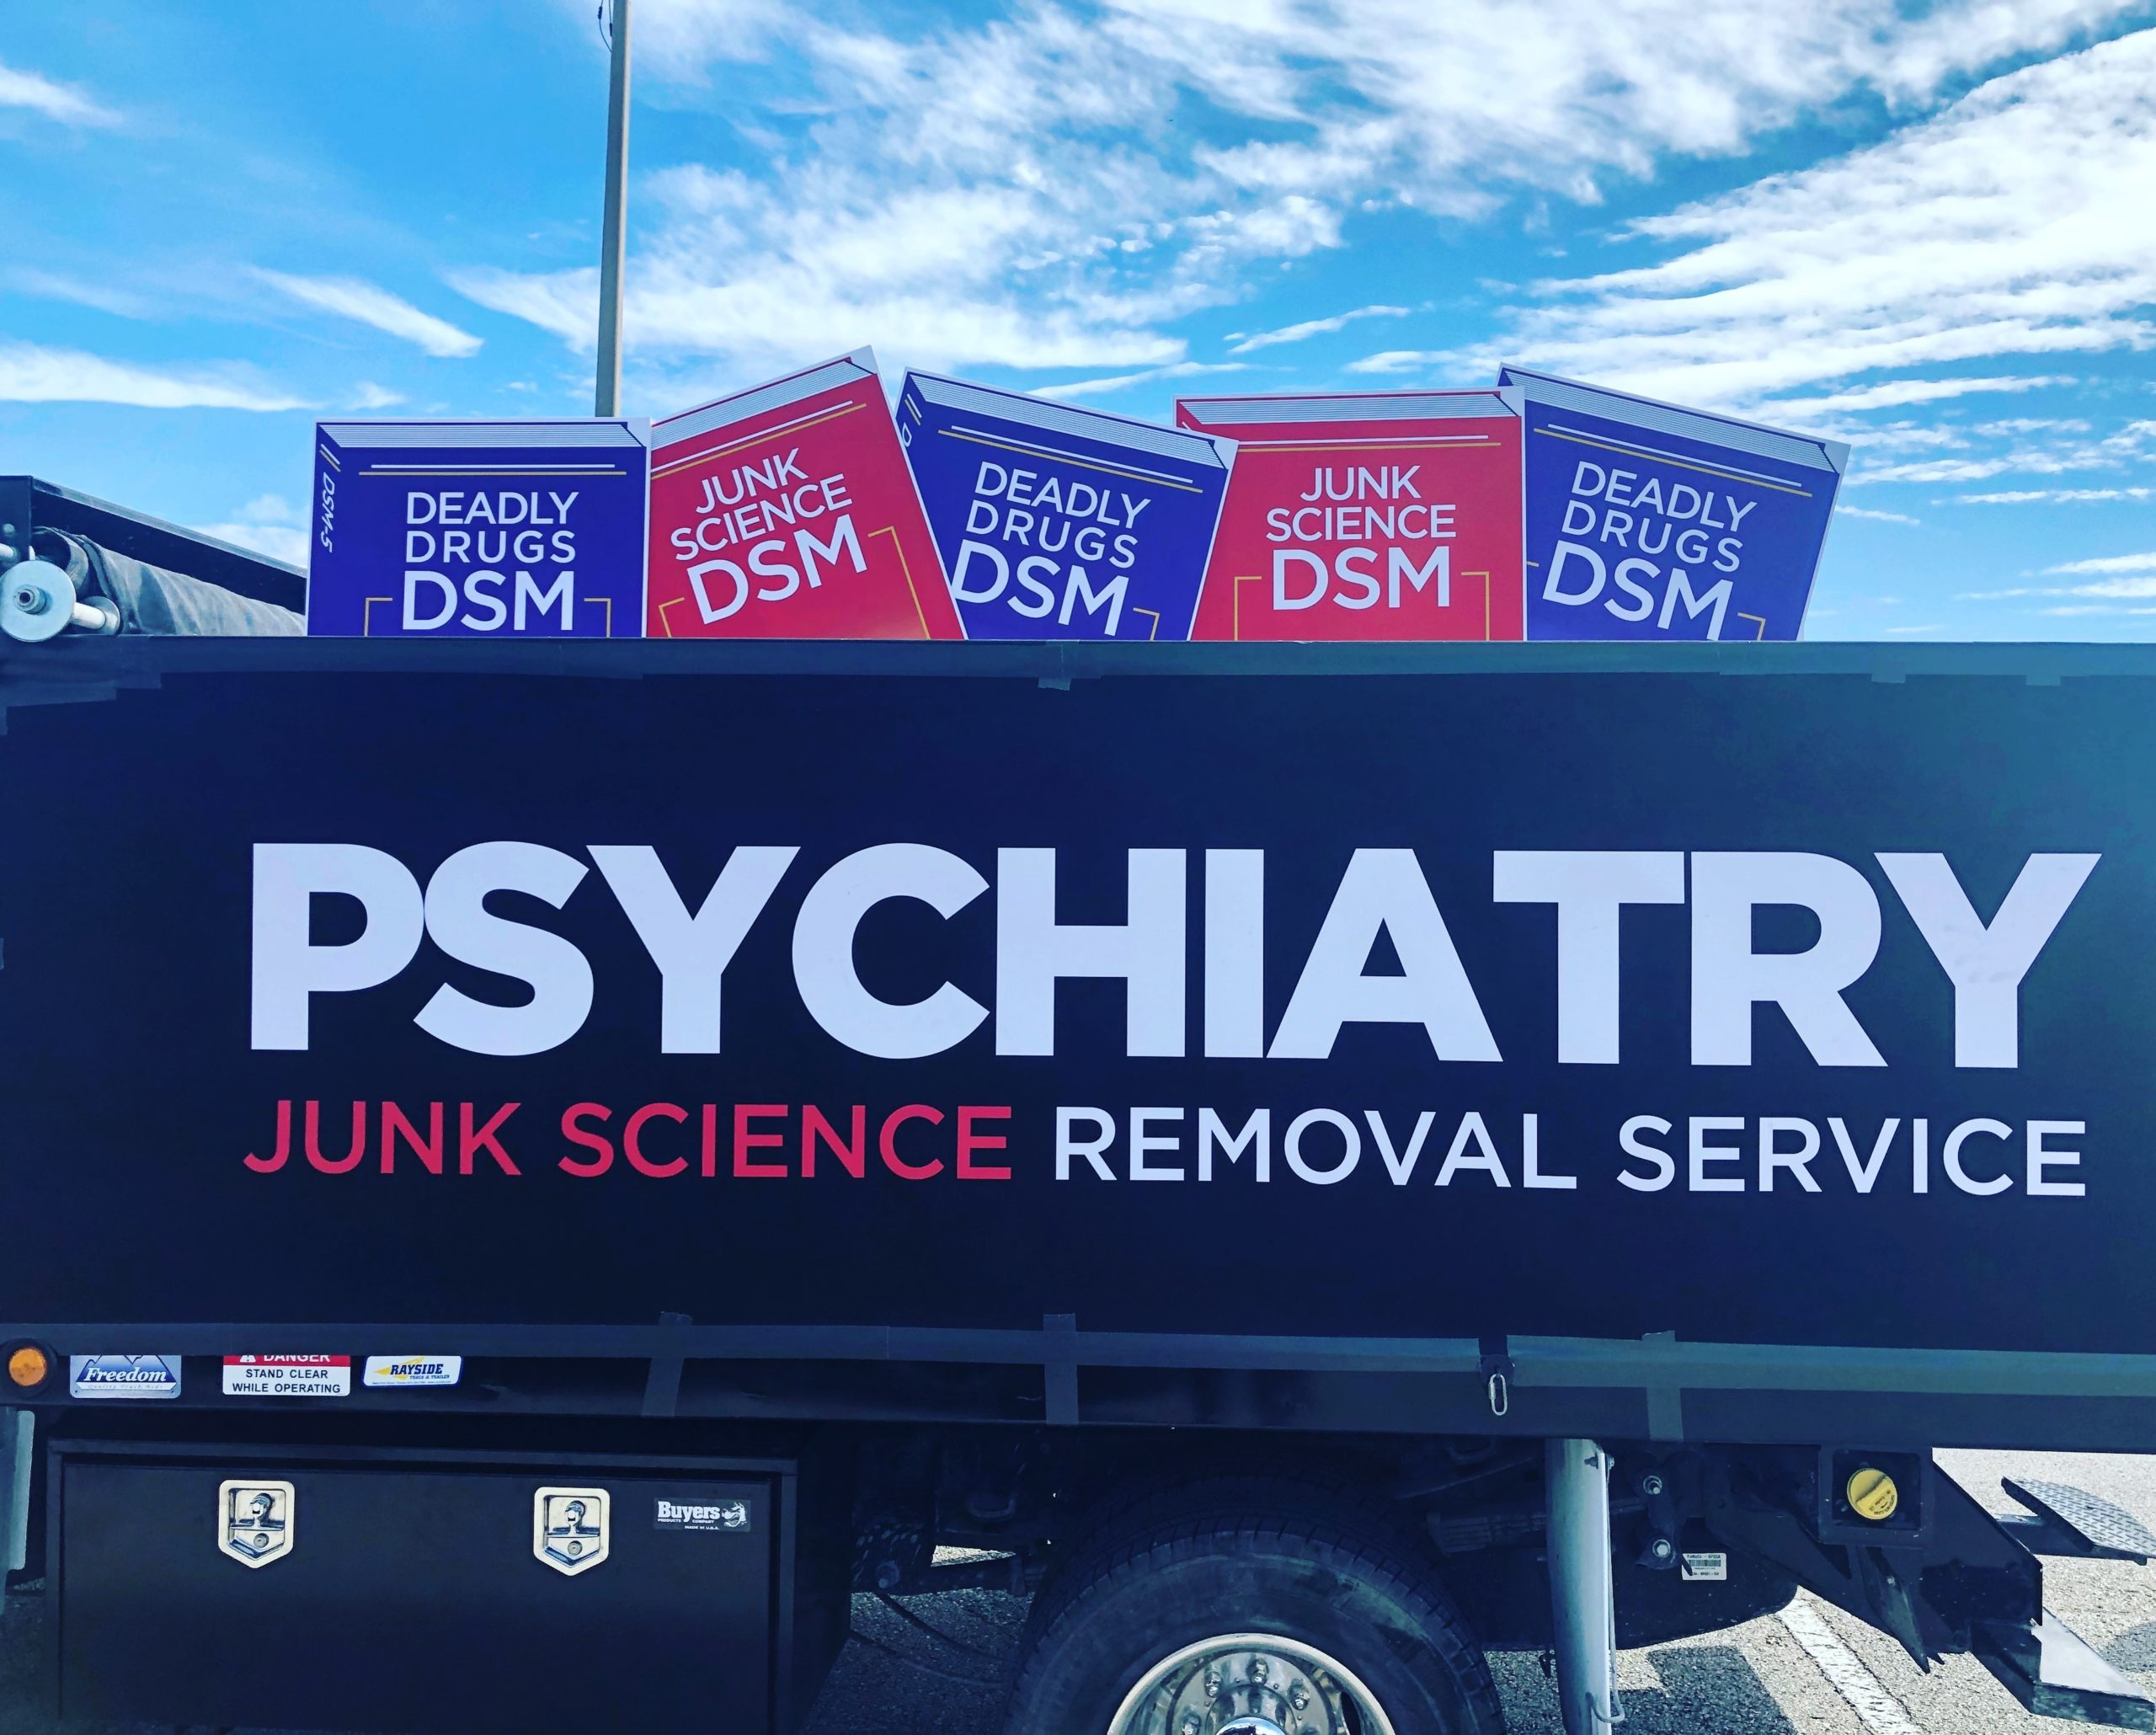 """There are no objective tests in psychiatry, no X-ray, laboratory, or exam finding that says definitively that someone does or does not have a mental disorder."" —Allen Frances, Former DSM-IV Task Force Chairman"